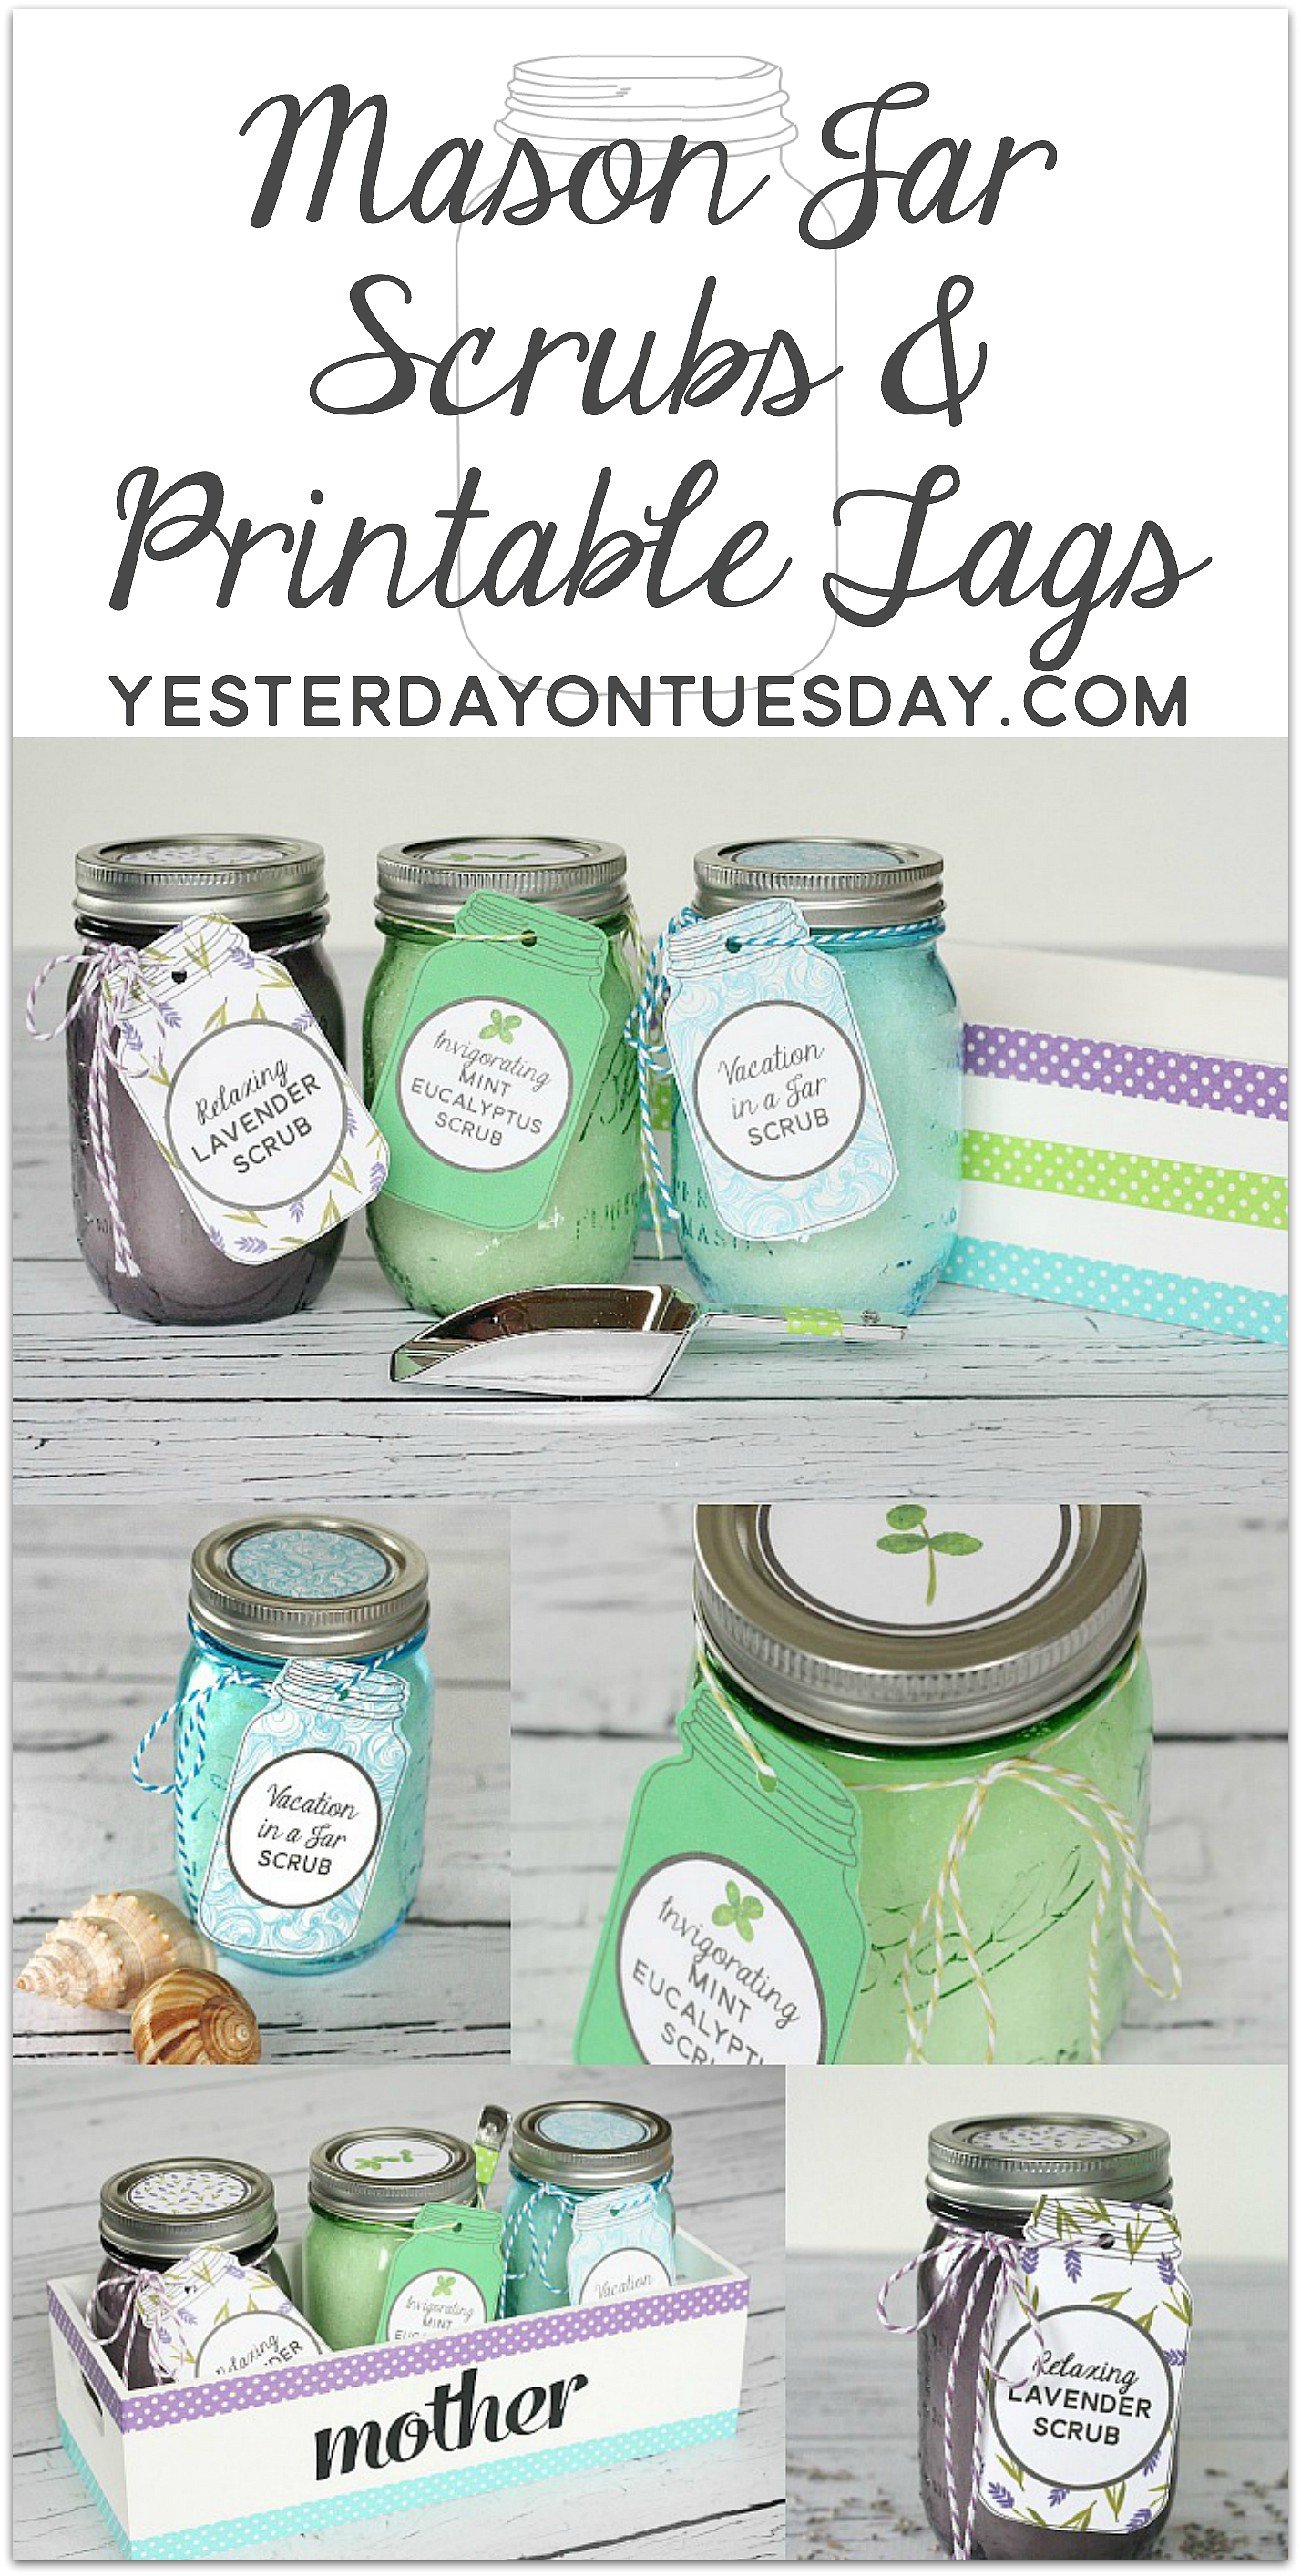 DIY Mason Jar Scrubs with Printable Tags, a wonderful gift for Mother's Day!